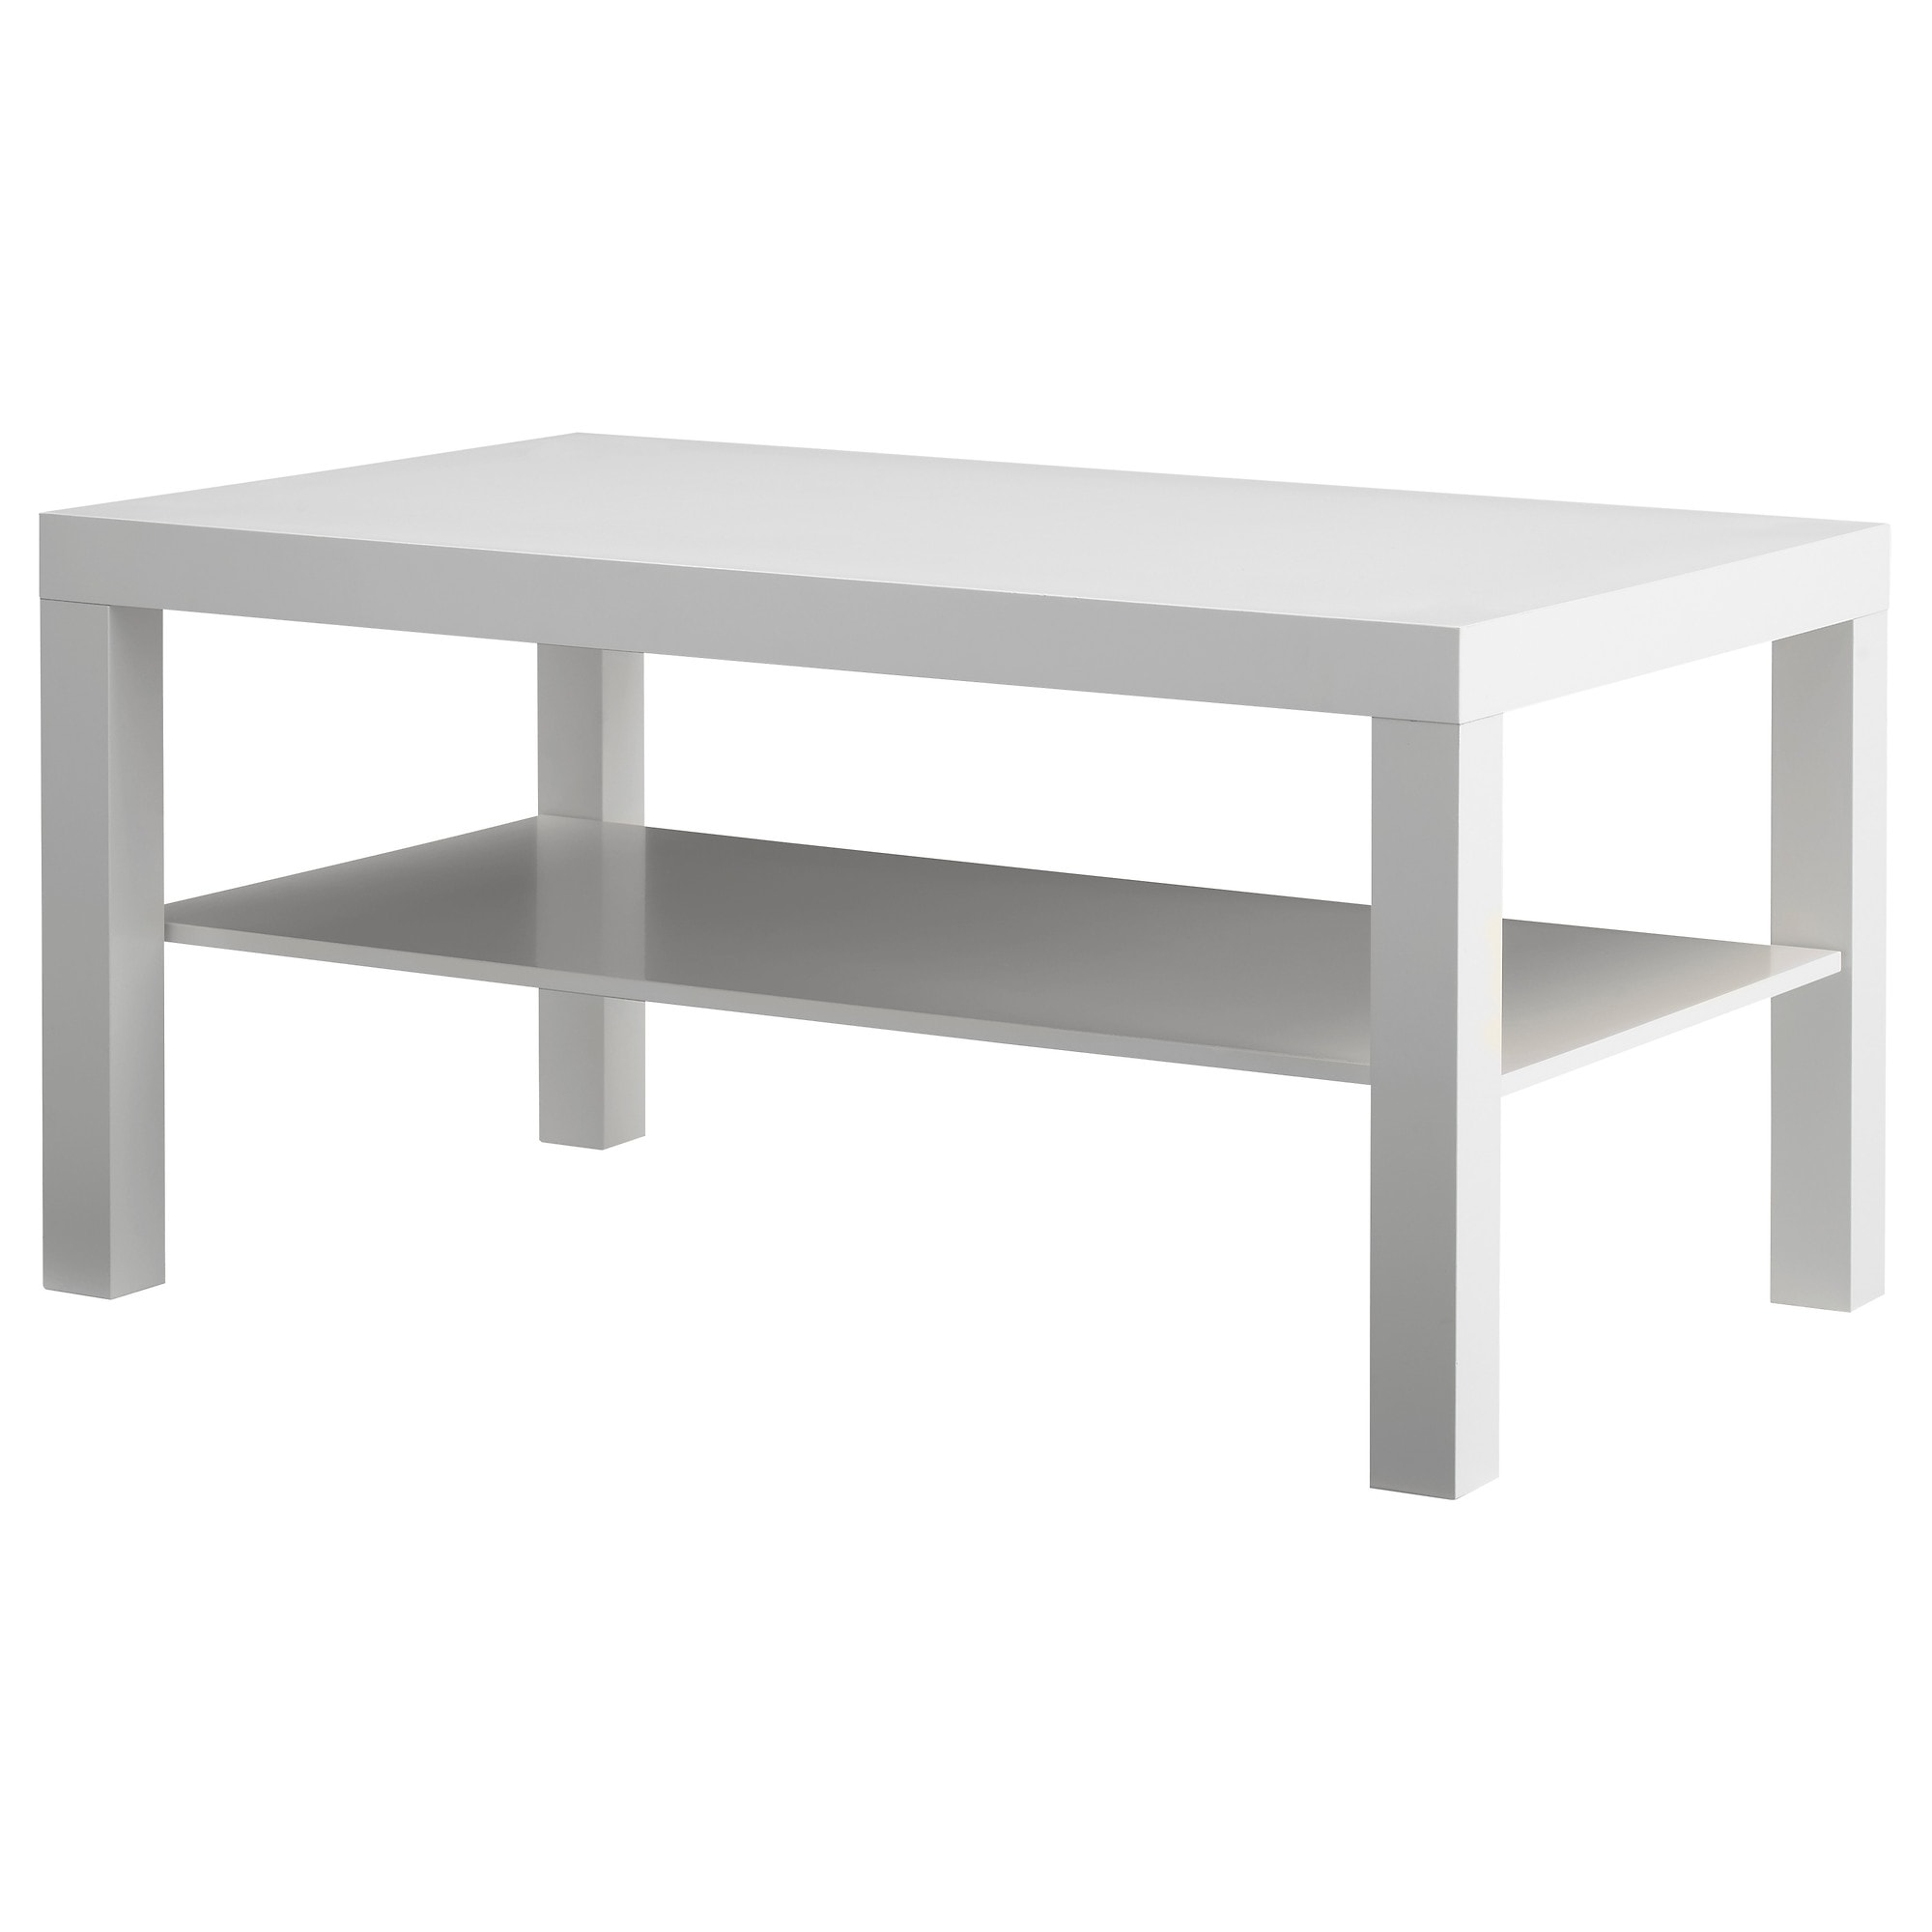 49406_PE145331_S5 Incroyable De Table Basse Lack Ikea